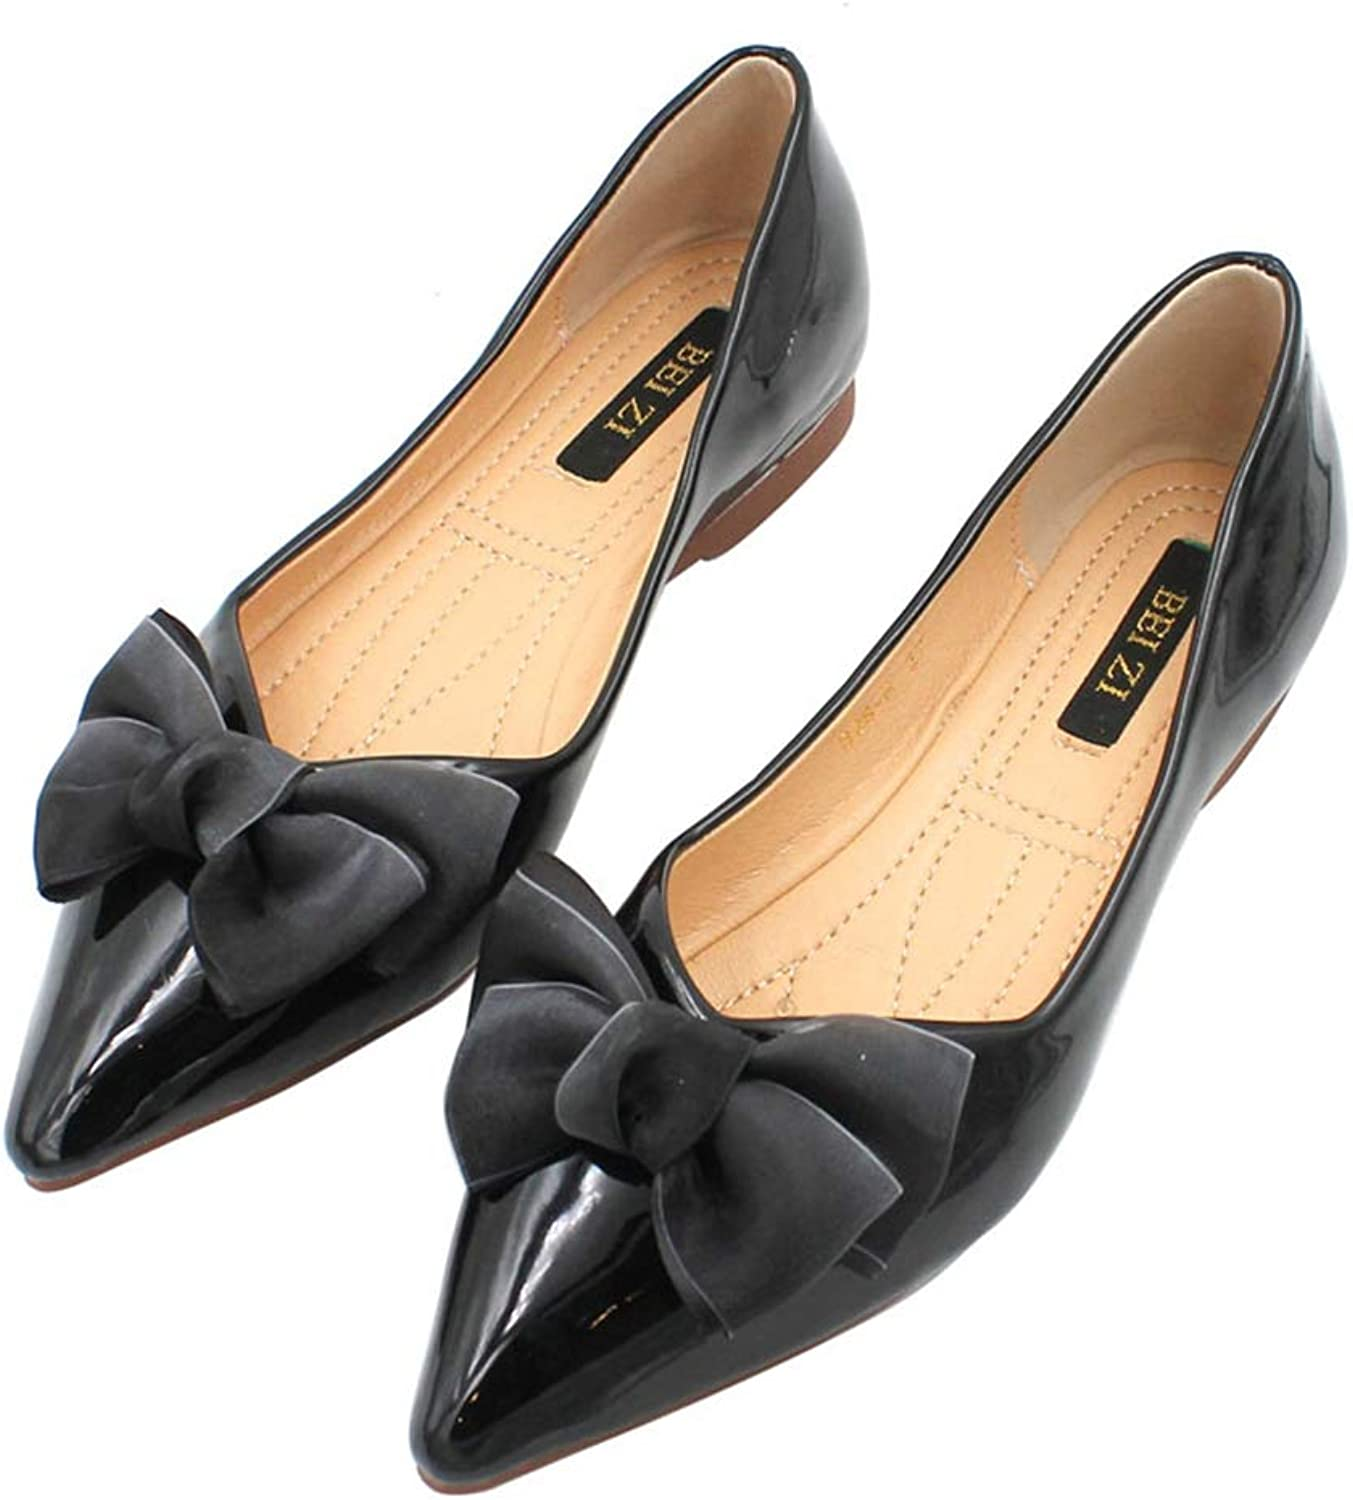 August Jim Women's Flats shoes,Pointed Toe Anti-Slip PU Leather Flat shoes Black